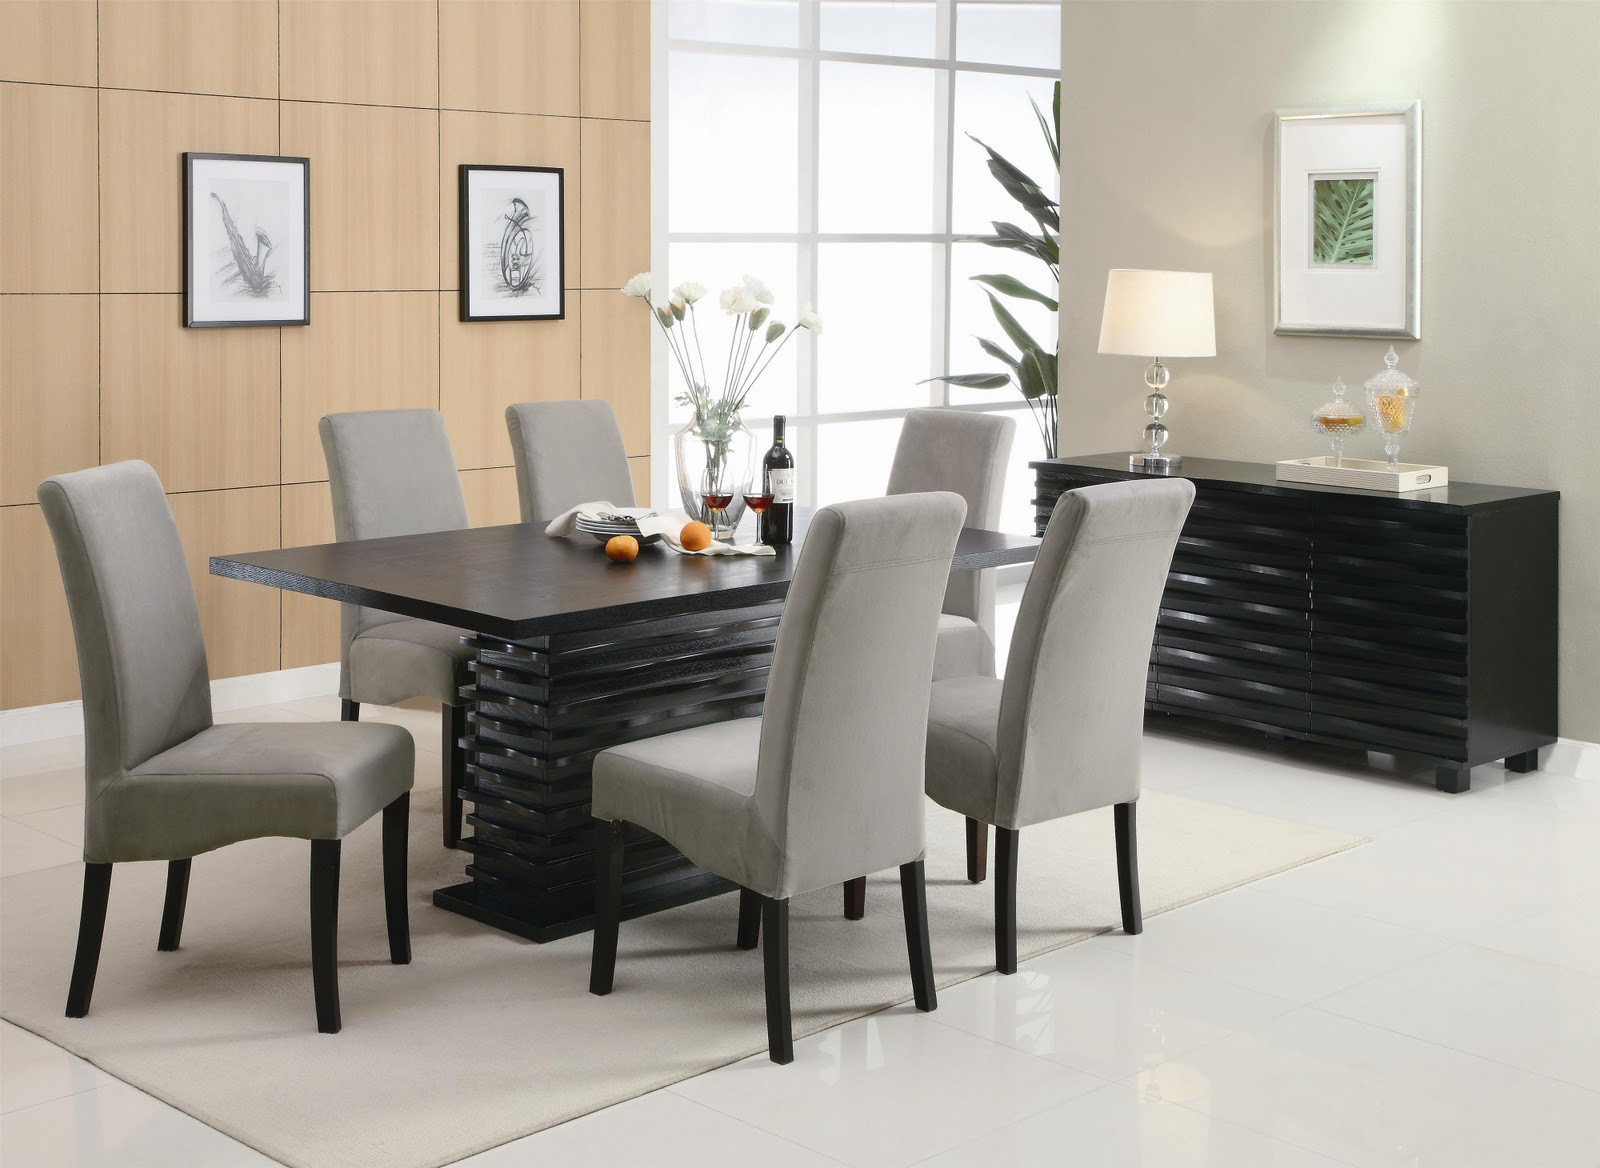 Best ideas about Contemporary Dining Room . Save or Pin Dining Room Now.